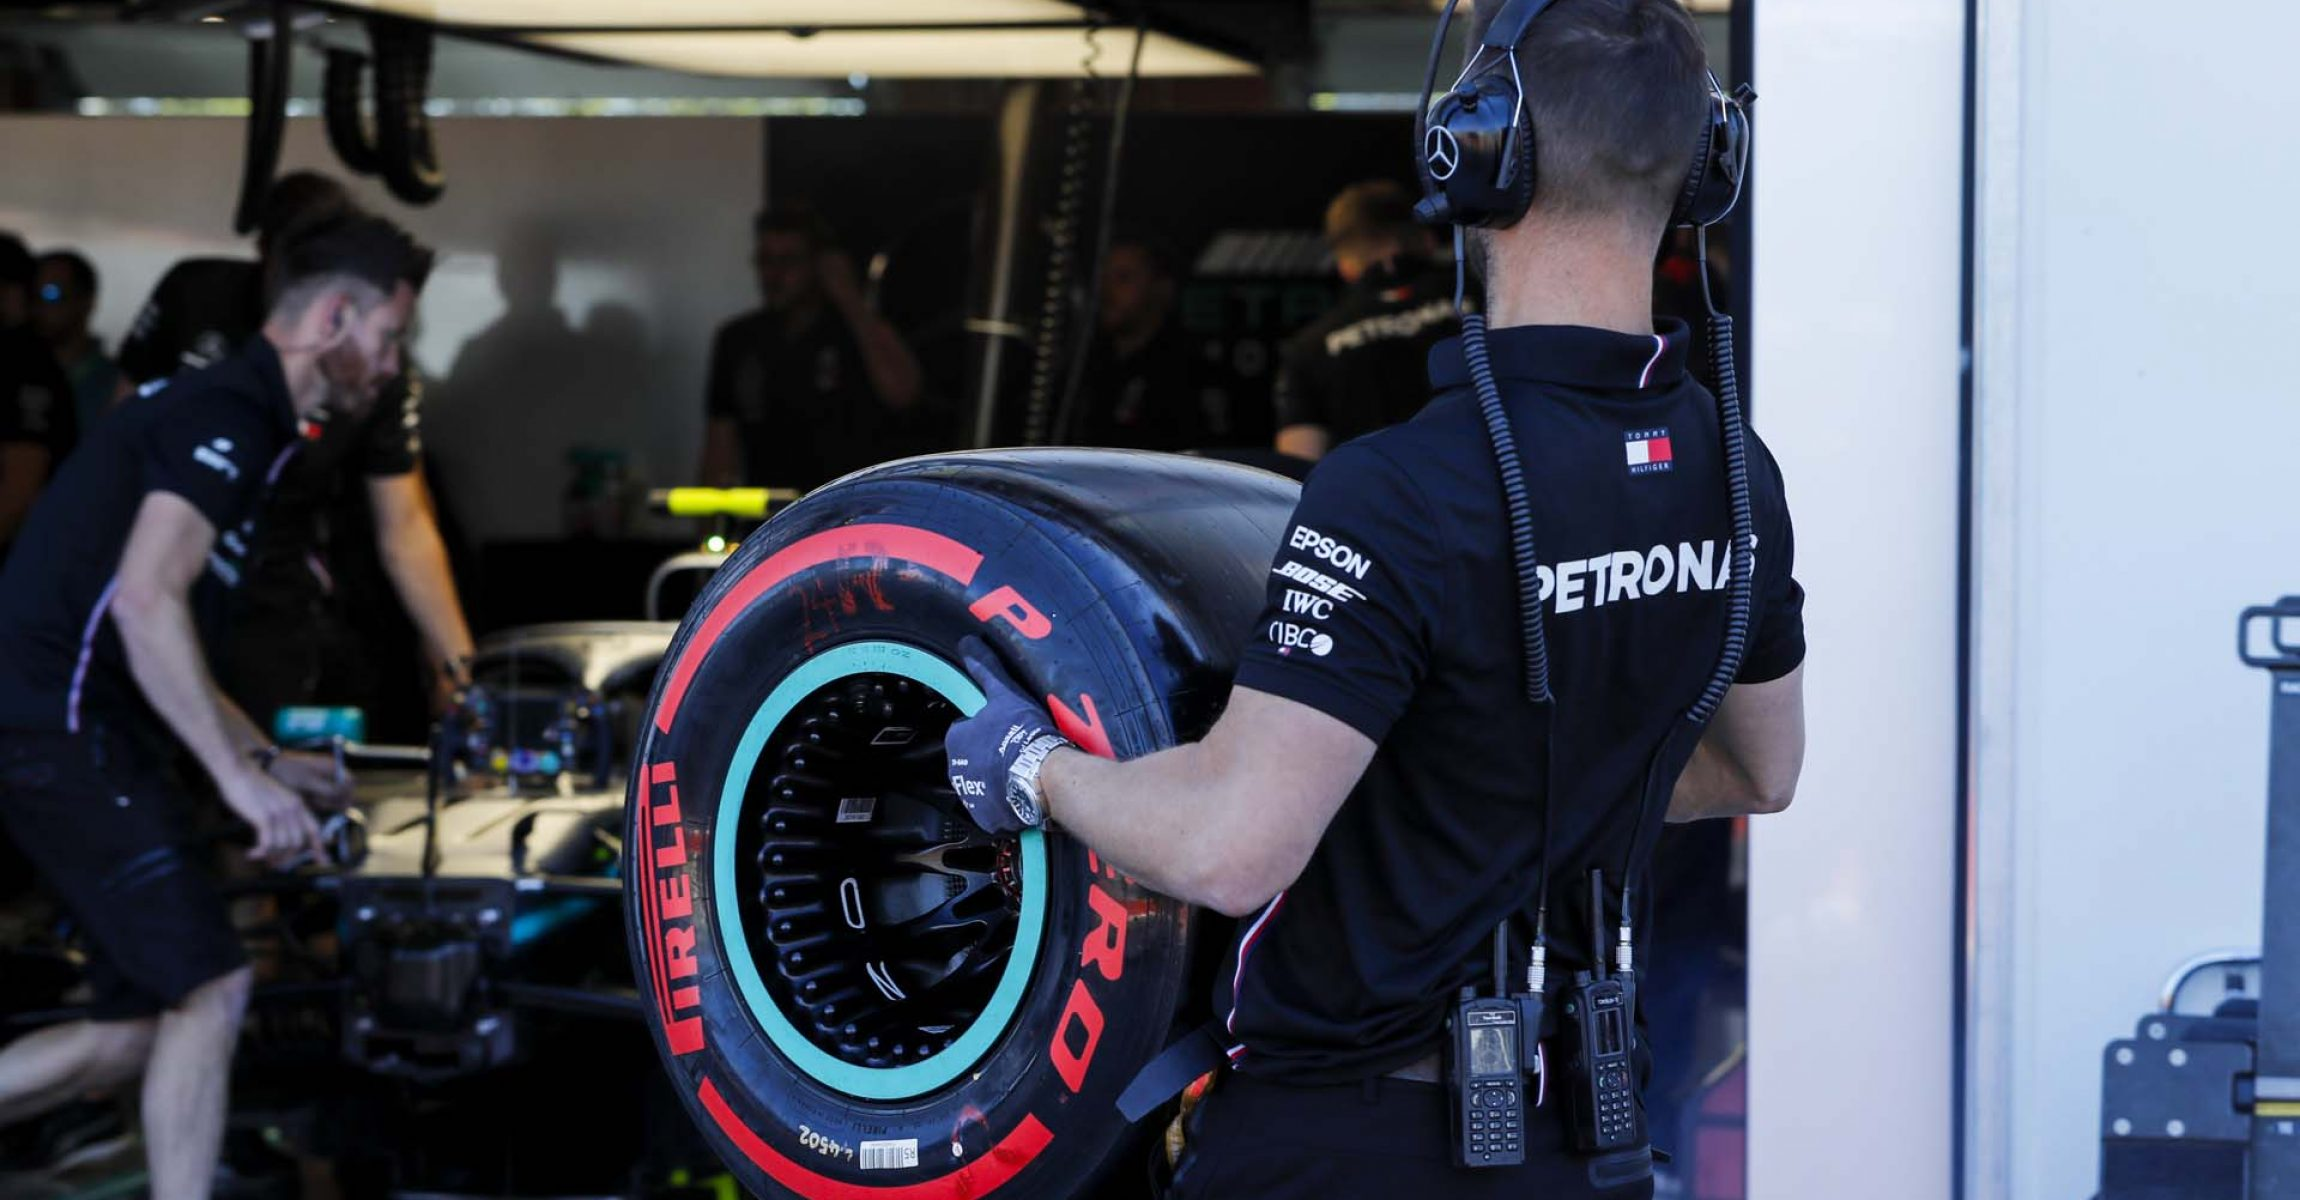 CIRCUIT GILLES-VILLENEUVE, CANADA - JUNE 08: Mercedes mechanic with Pirelli tyre during the Canadian GP at Circuit Gilles-Villeneuve on June 08, 2019 in Circuit Gilles-Villeneuve, Canada. (Photo by Steven Tee / LAT Images)